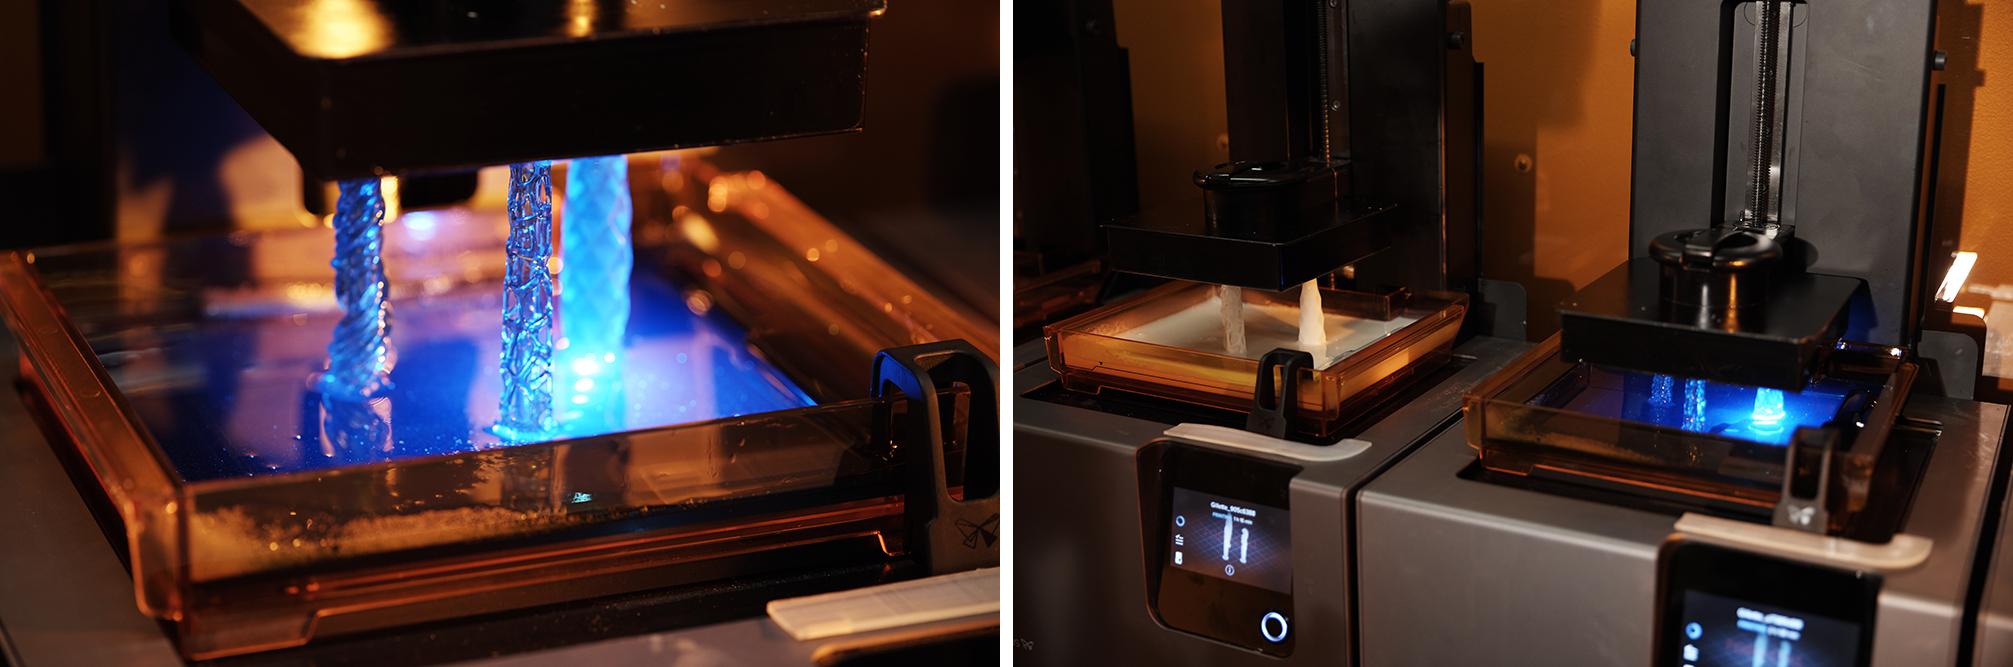 Formlabs stereolithography (SLA) Form 2 3D printers print multiple custom razor handle designs